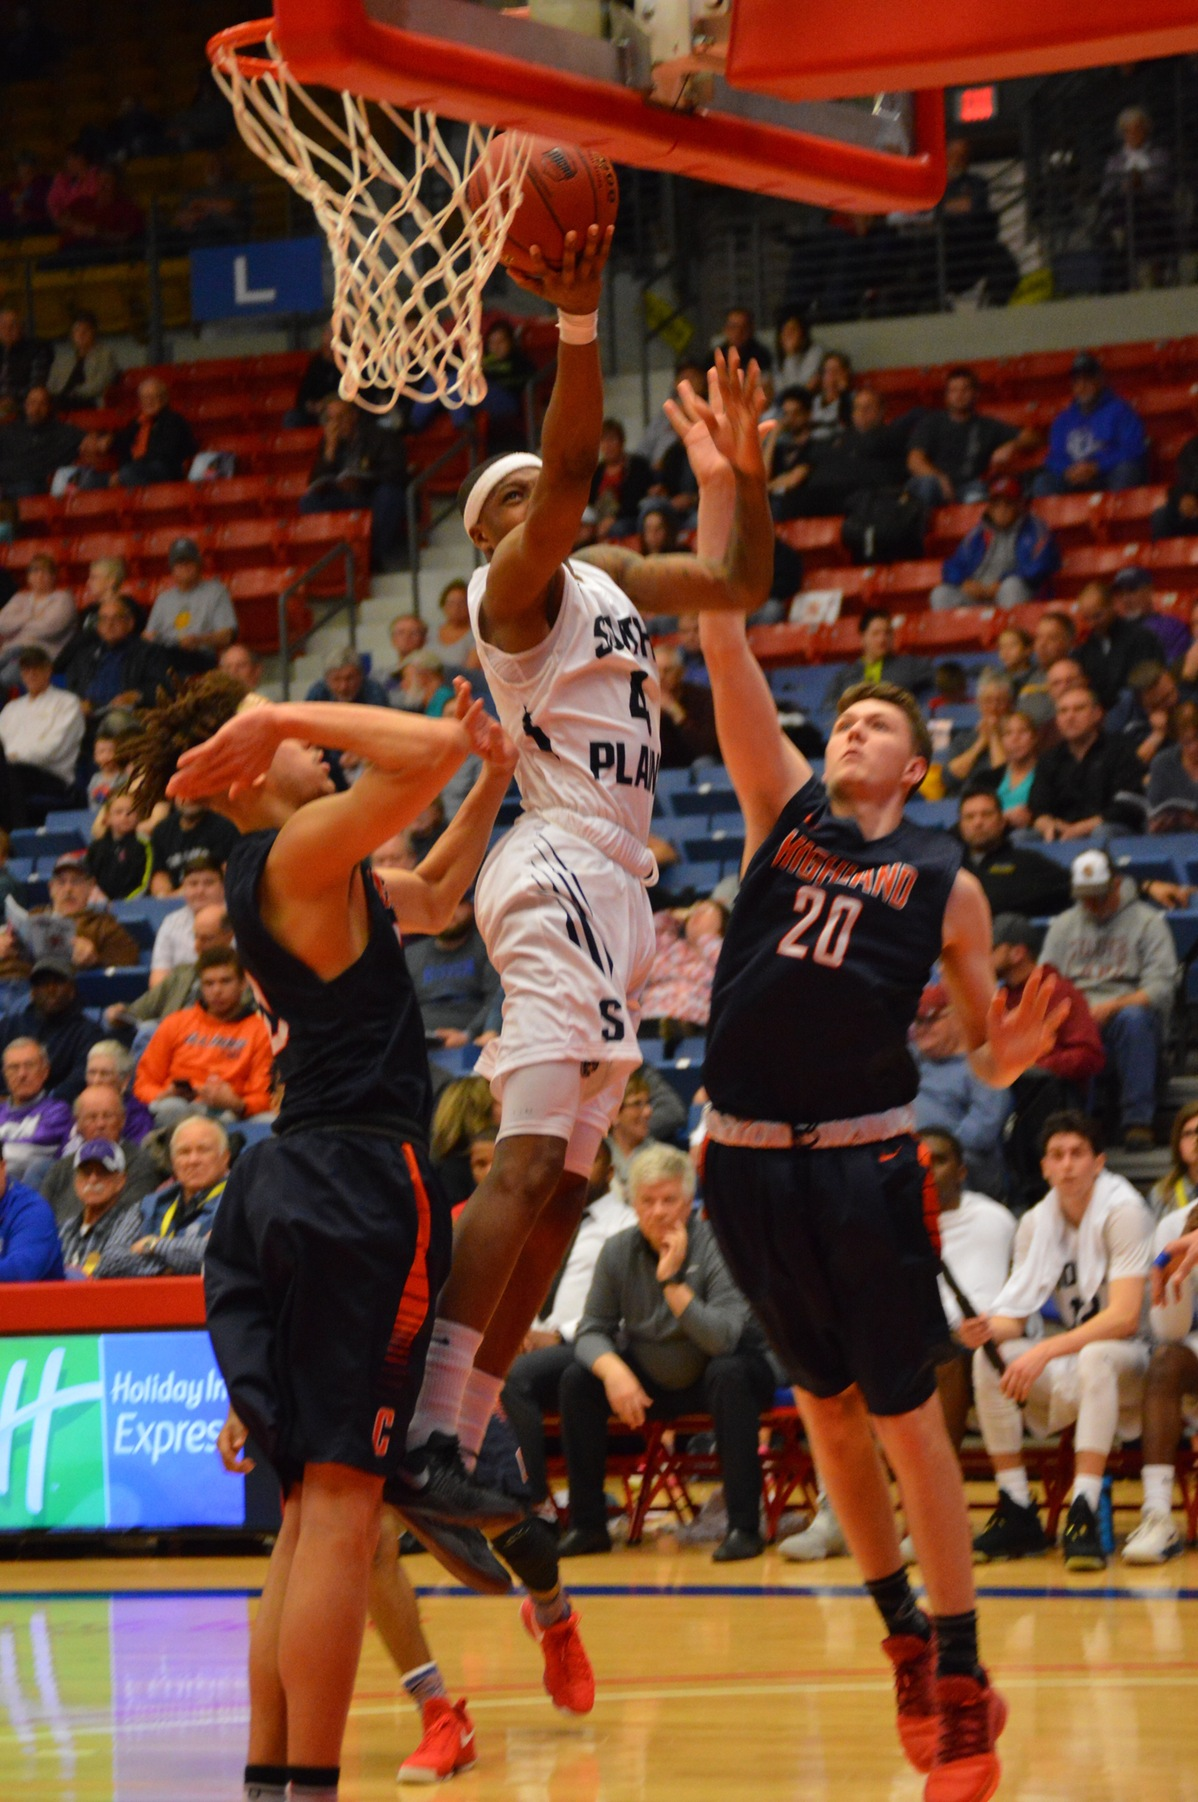 Texans top Cougars 91-71 Monday in opening round of 2018 NJCAA National Tournament in Kansas